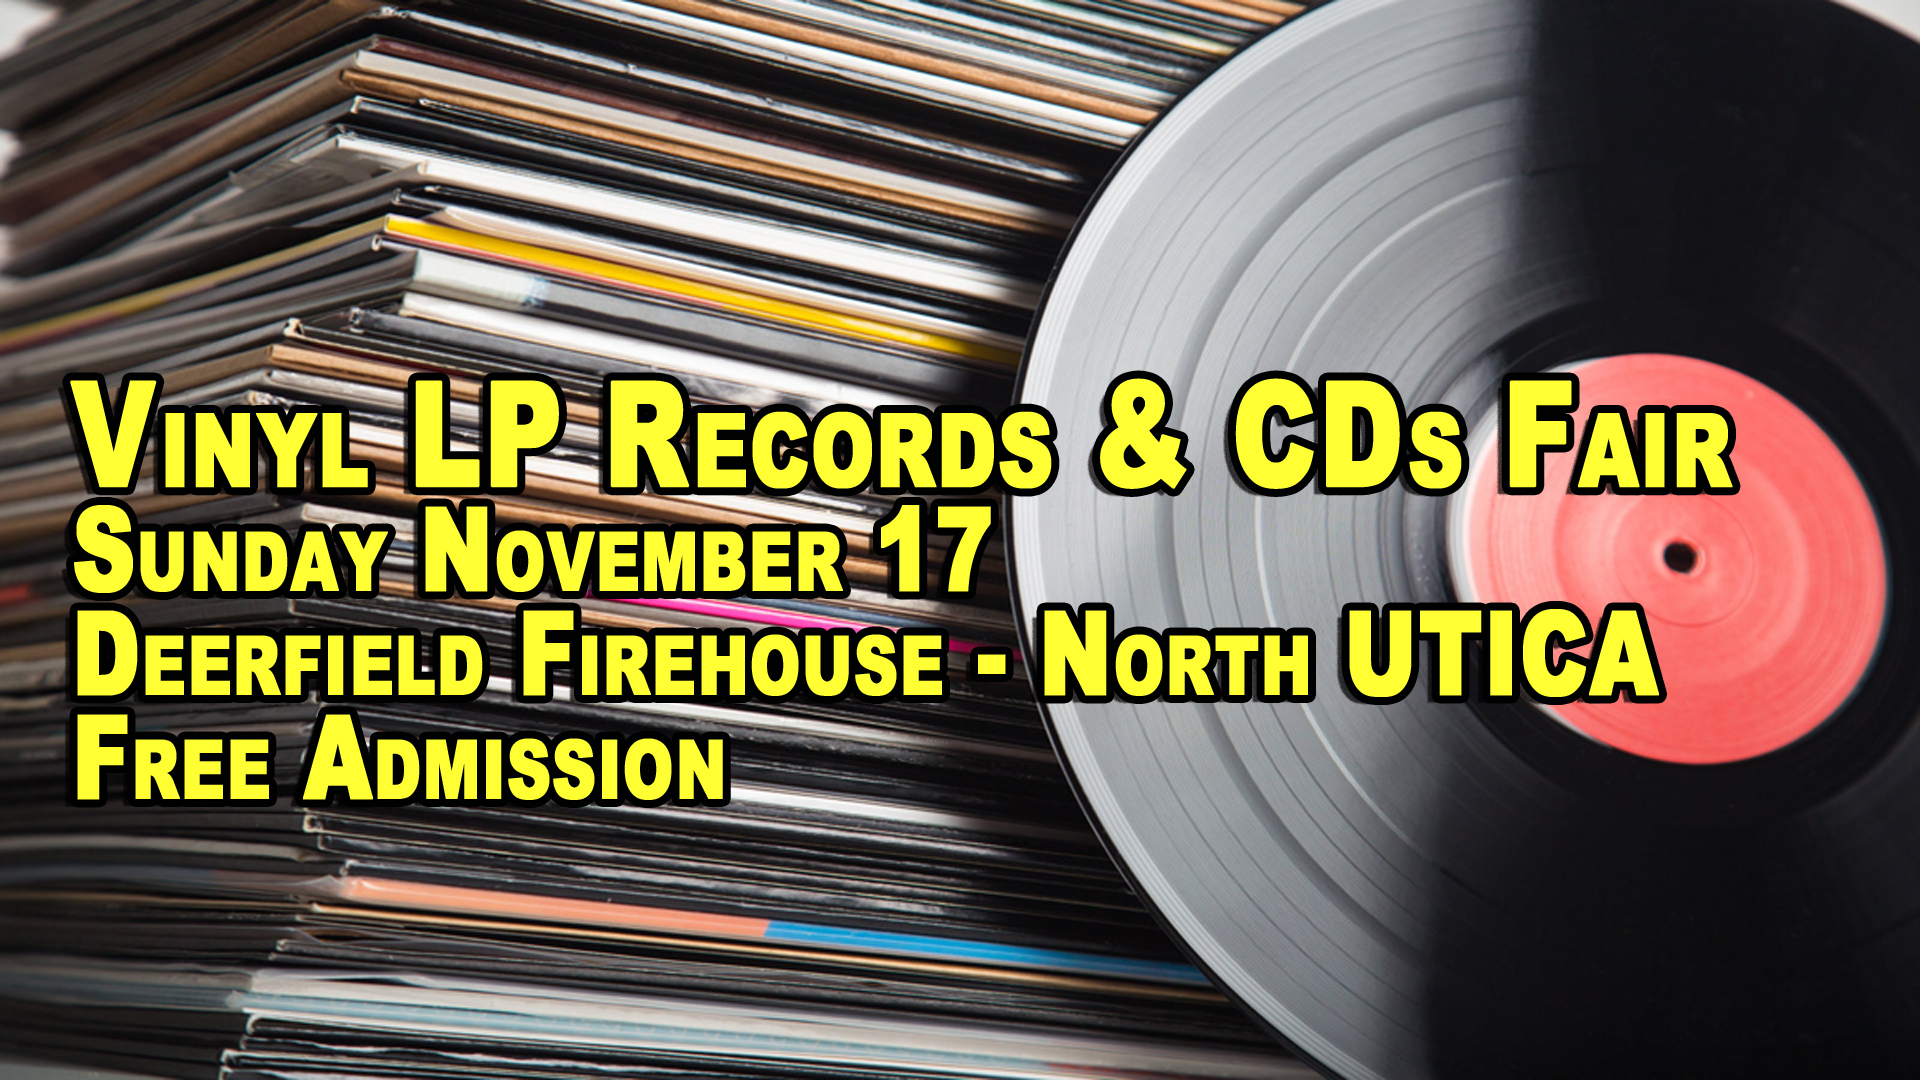 Utica NY LP Vinyl Records & CDs Fair – Sunday November 17th – Free Admission